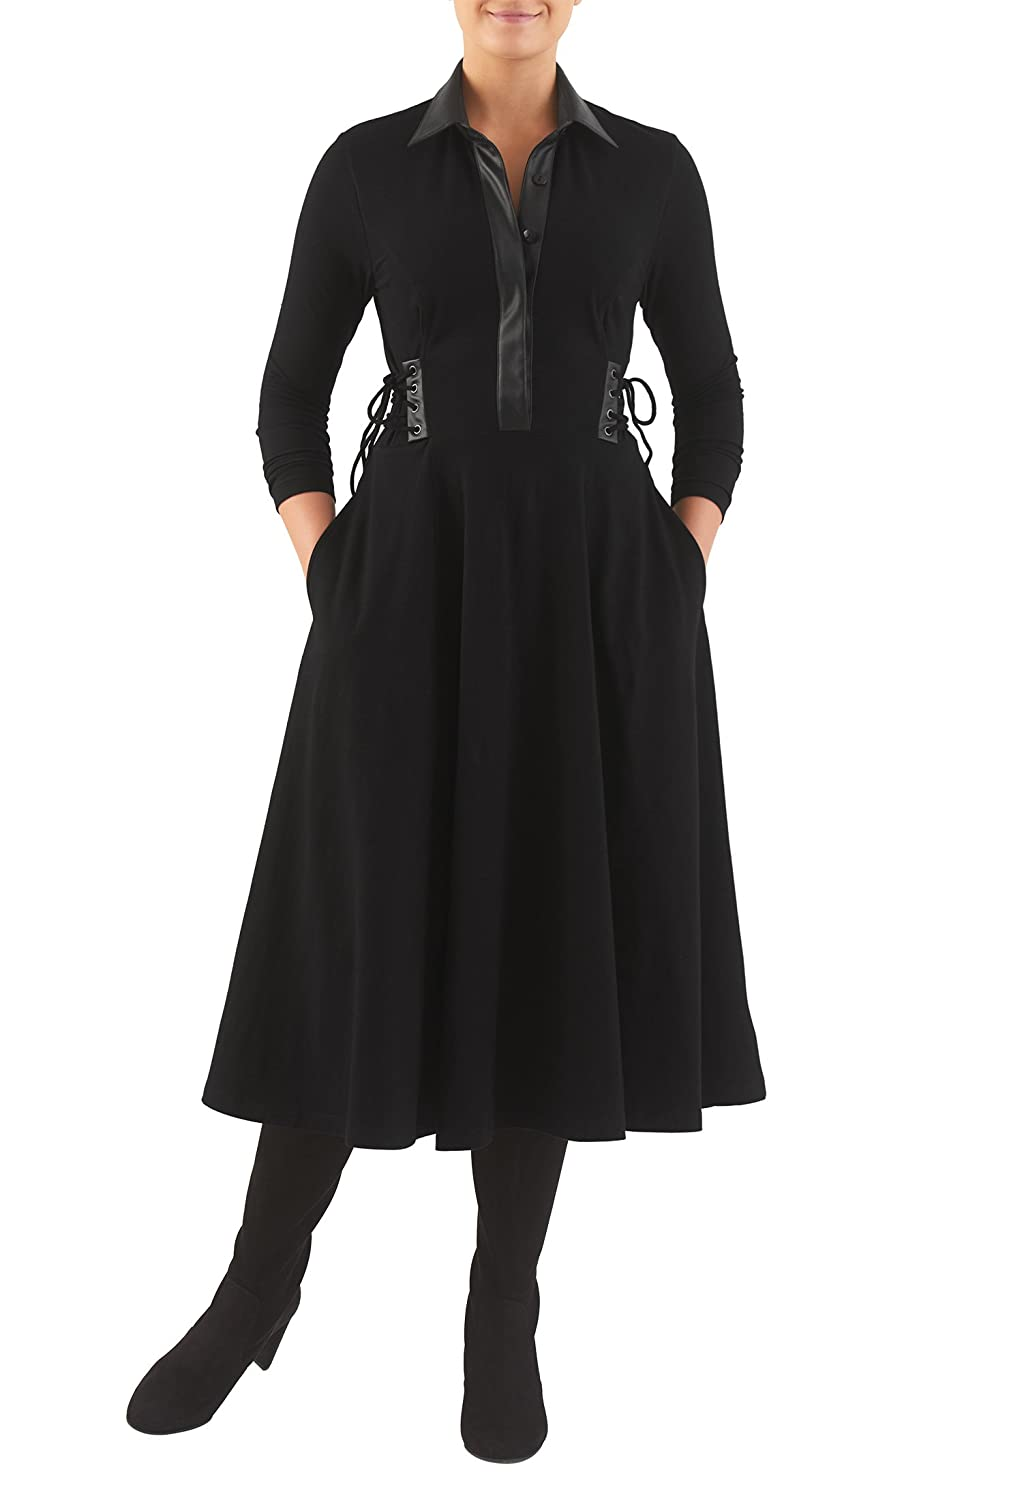 Steampunk Dresses and Costumes eShakti Womens Faux leather lace-up cotton knit shirtdress $59.95 AT vintagedancer.com